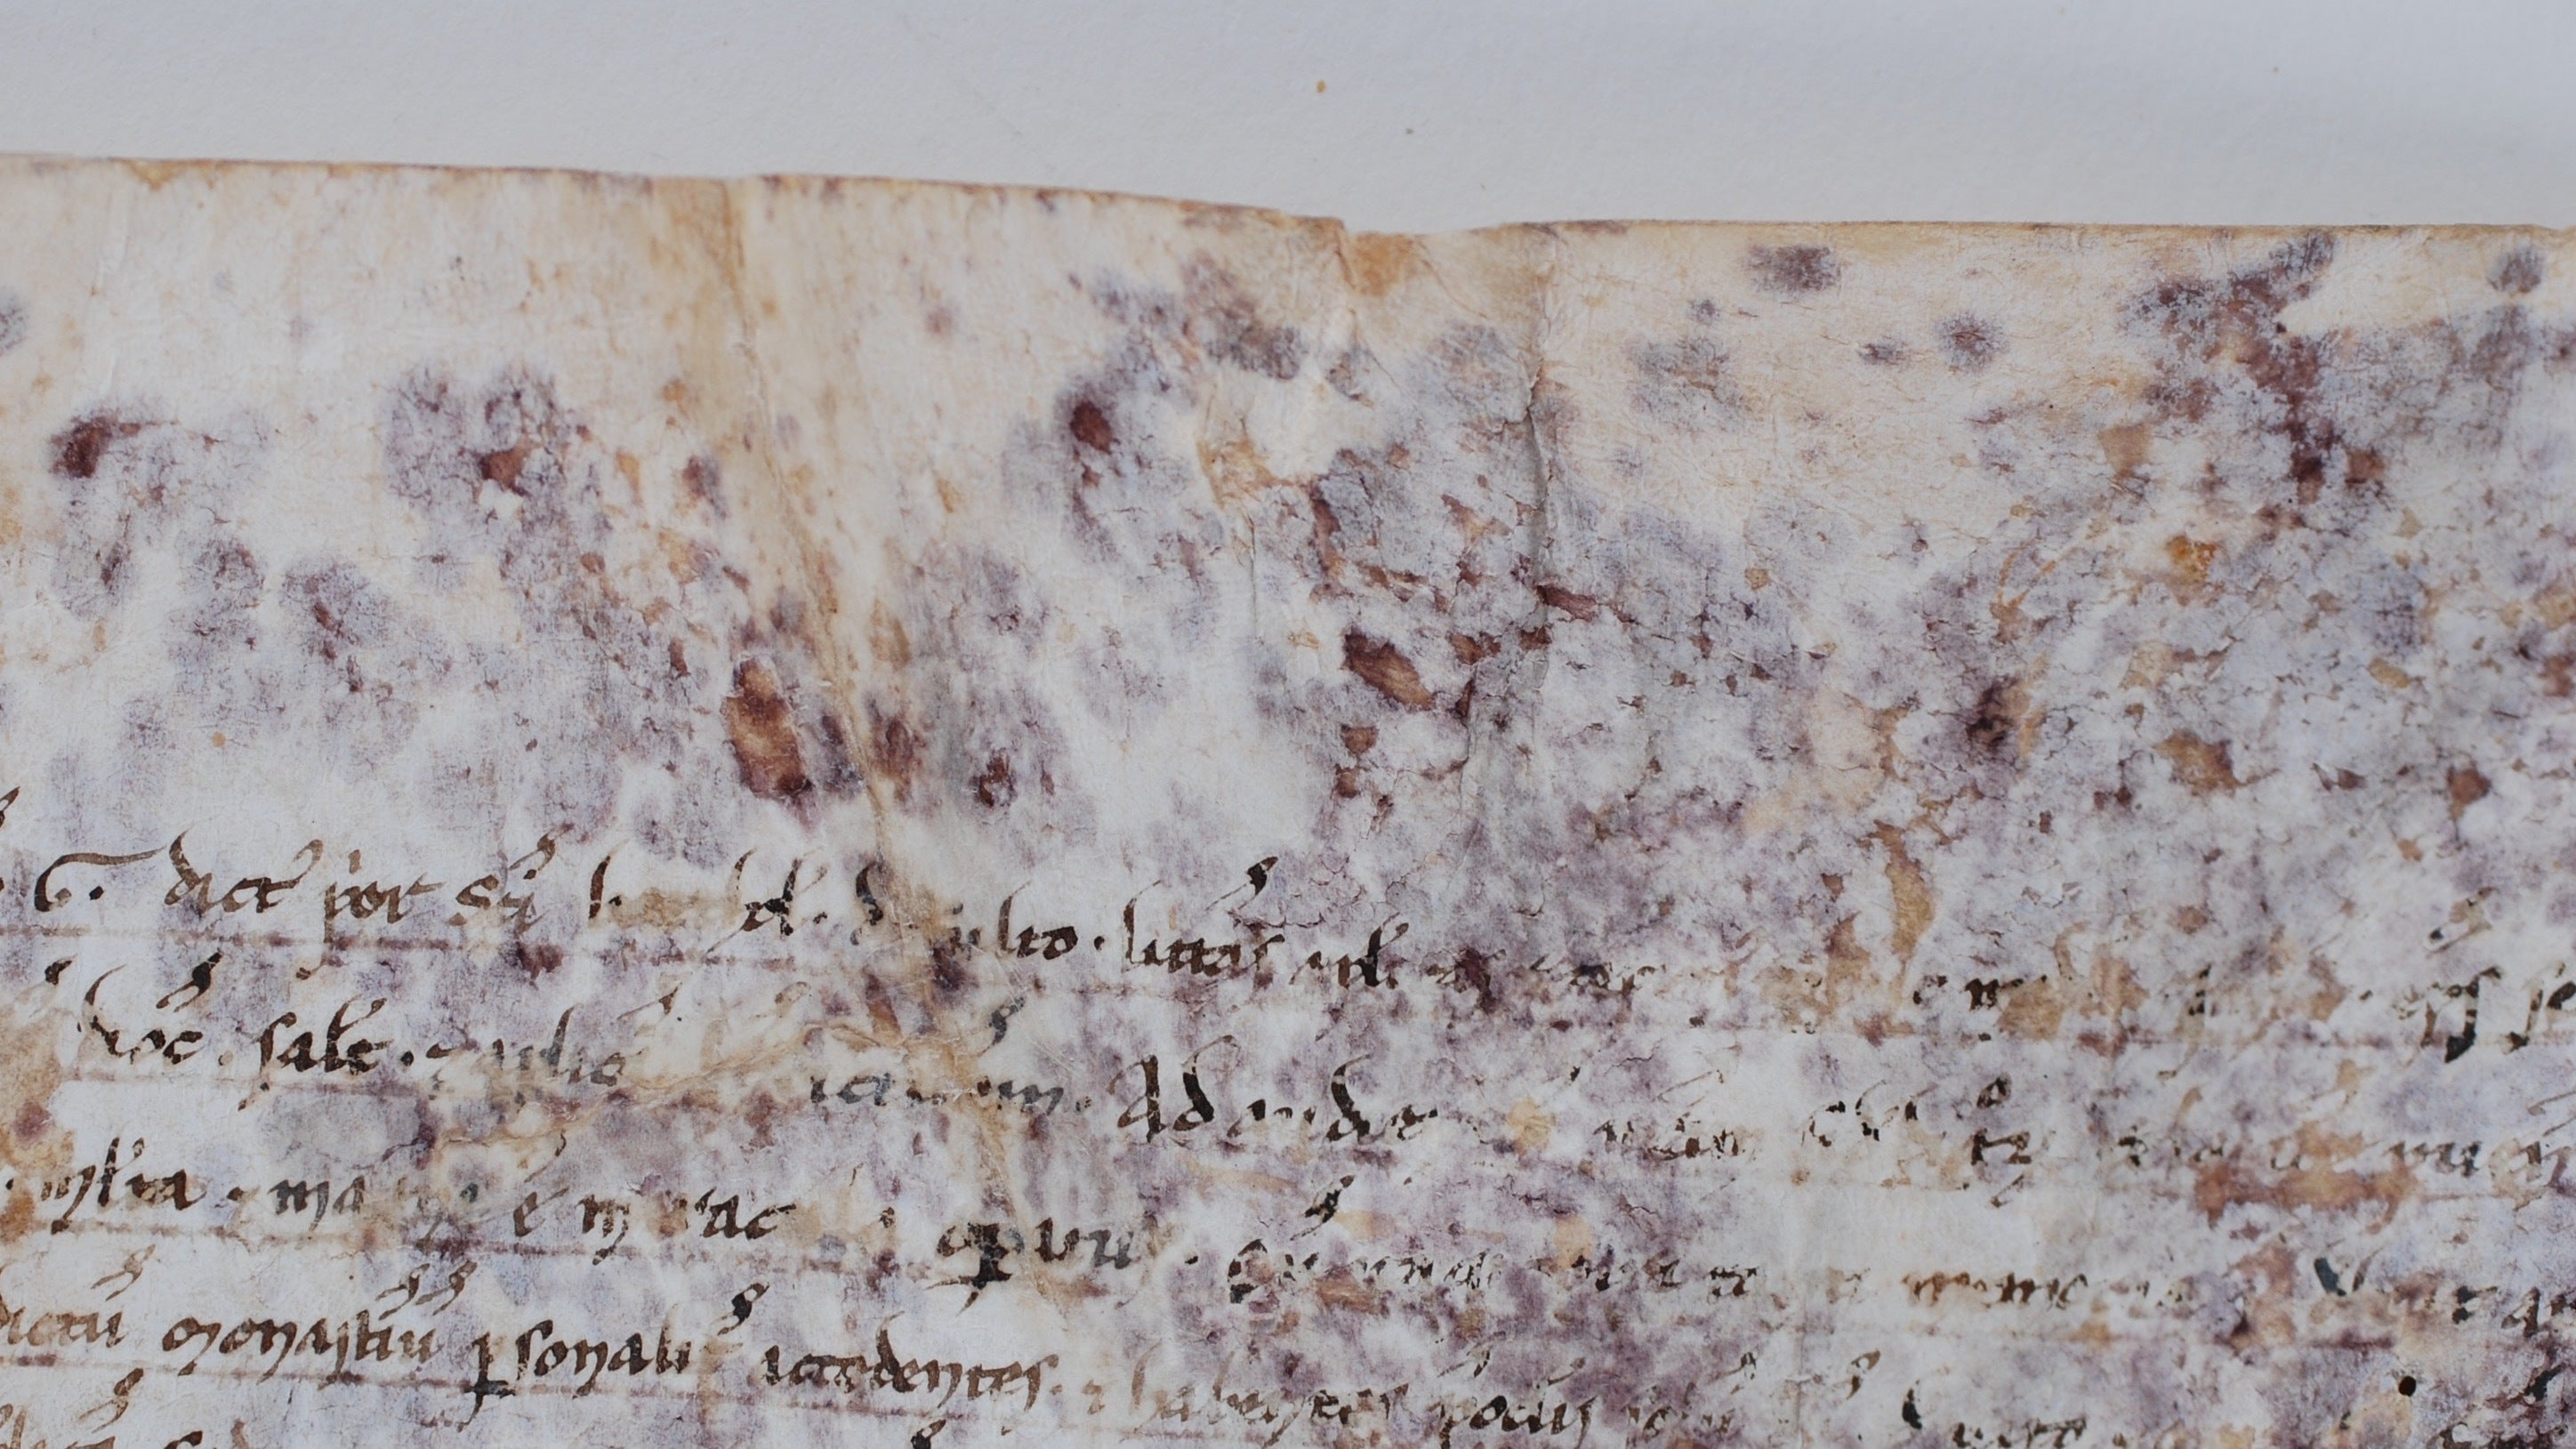 High-Tech Science Solves The Mystery Of 800-Year-Old Scroll